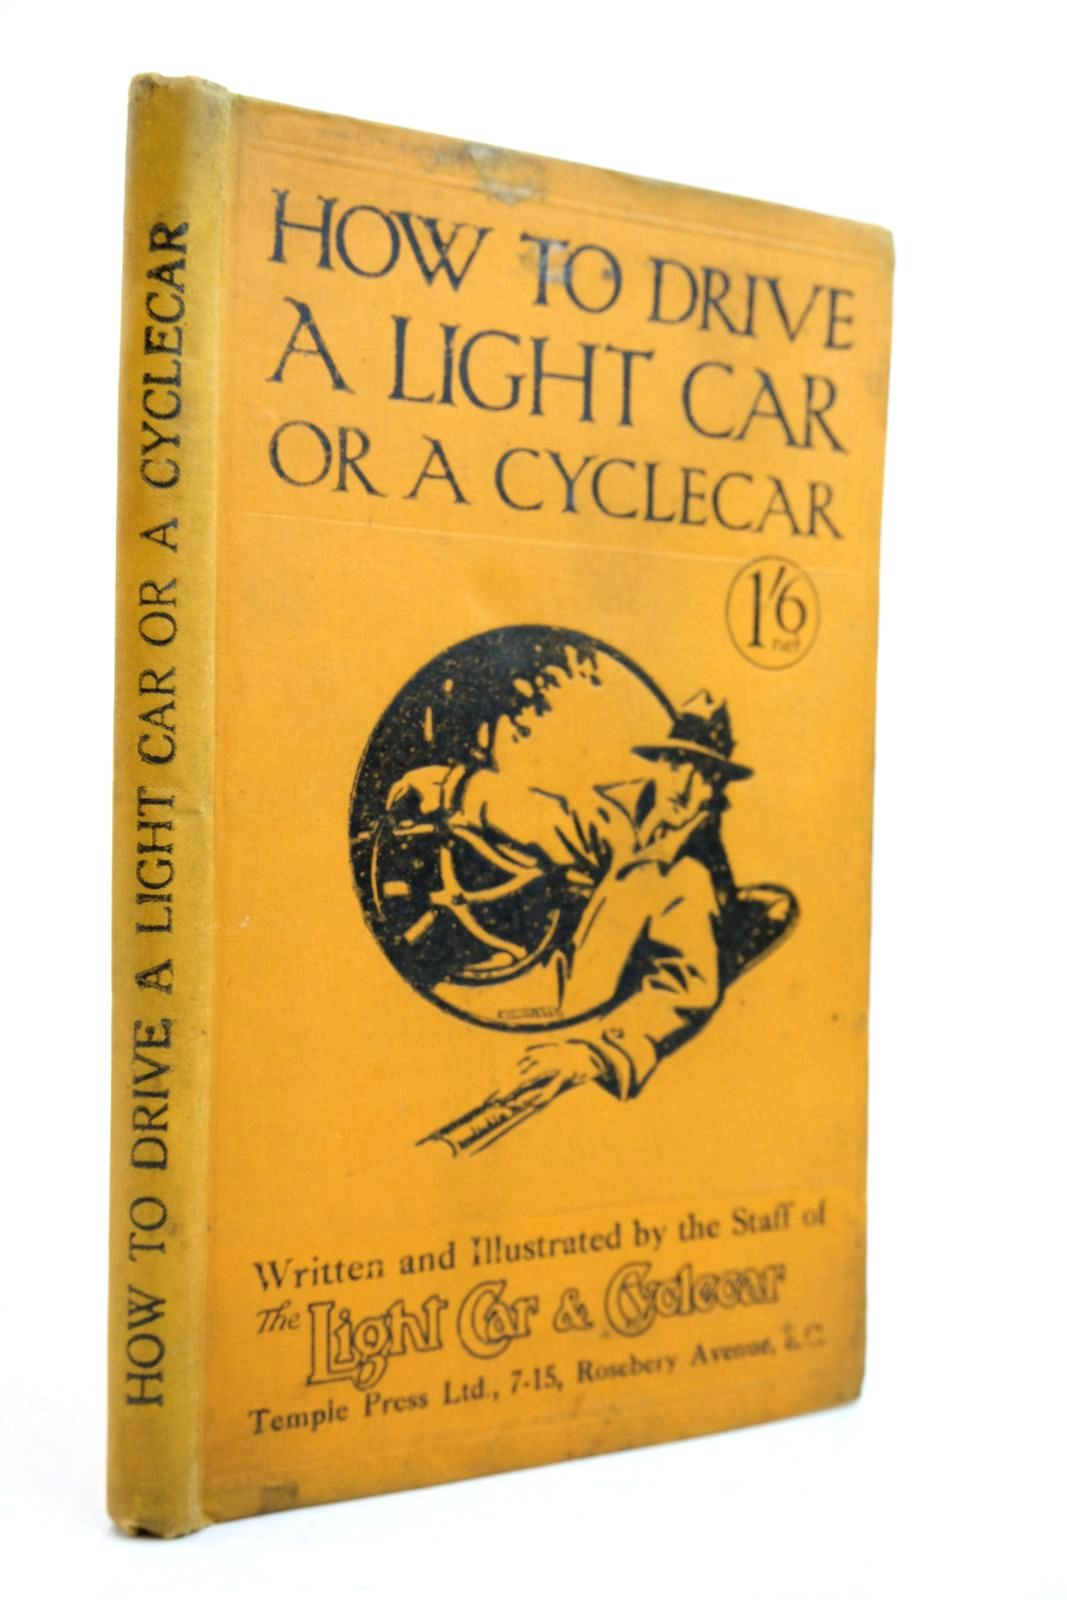 Photo of HOW TO DRIVE A LIGHT CAR OR A CYCLECAR- Stock Number: 2134568